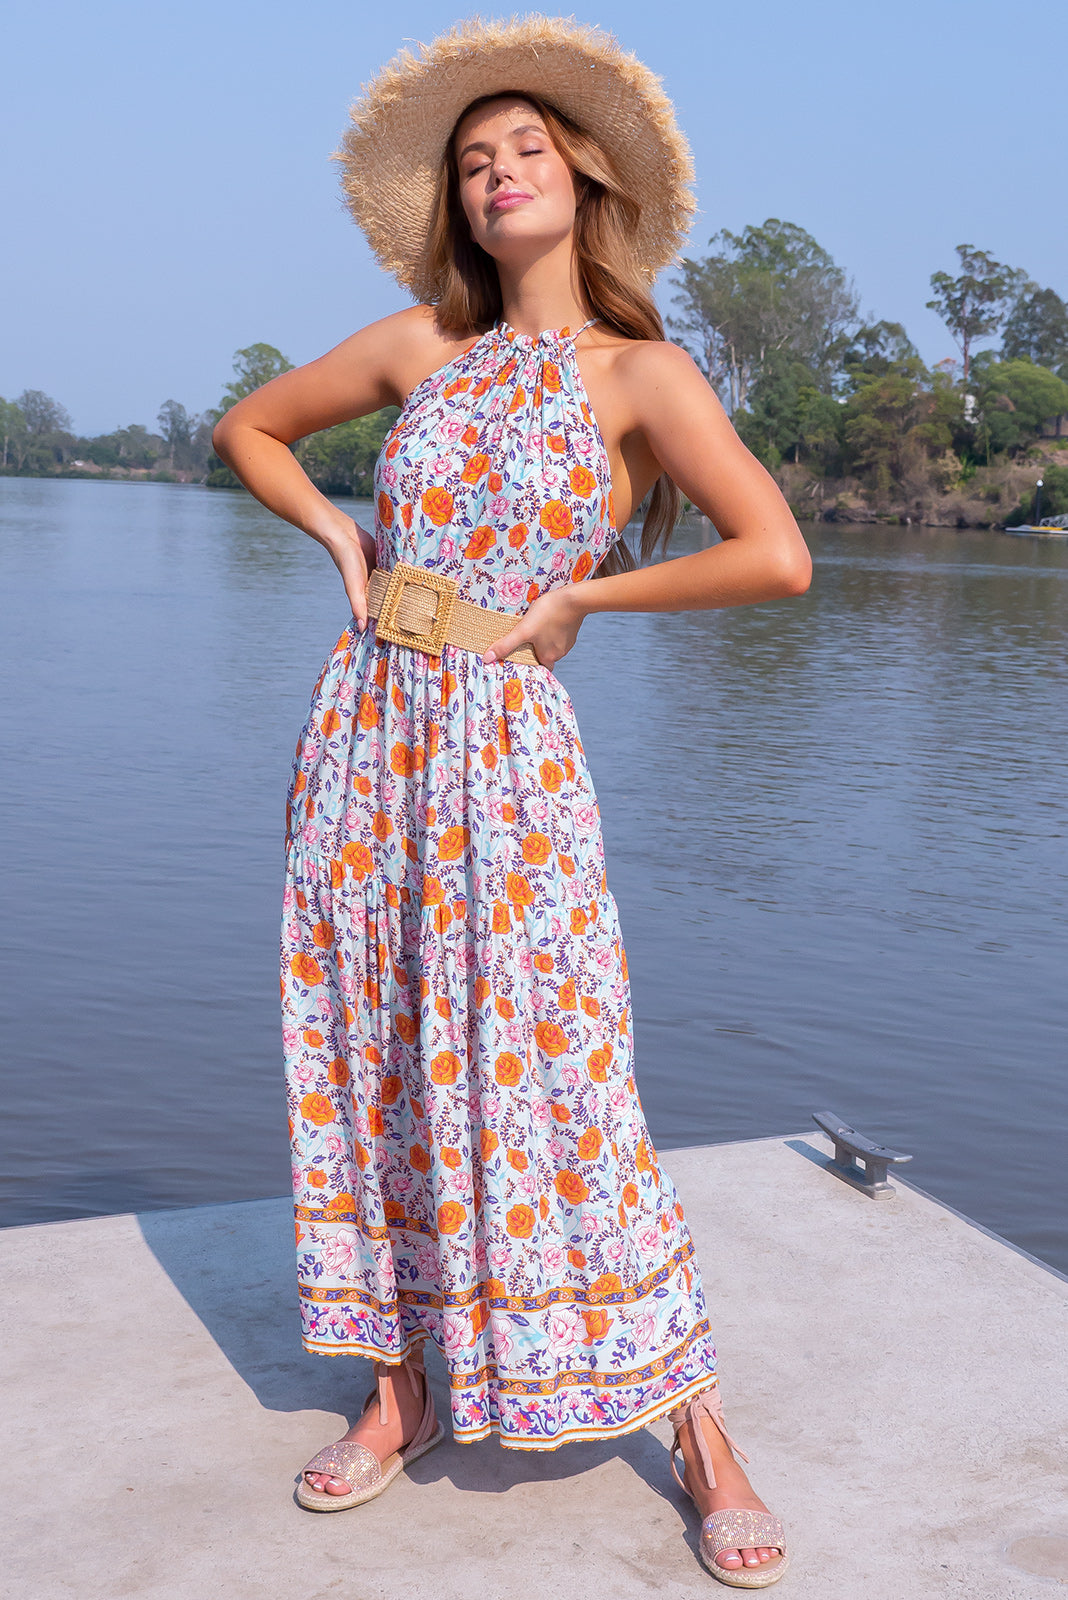 Noosa French Mint Maxi Dress, bright floral maxi dress features halter neck, adjustable string neckline, tiered skirt, side pockets, floral design featuring bright orange, purple, blue and fuchsia and complimentary border pattern in woven 100% rayon.